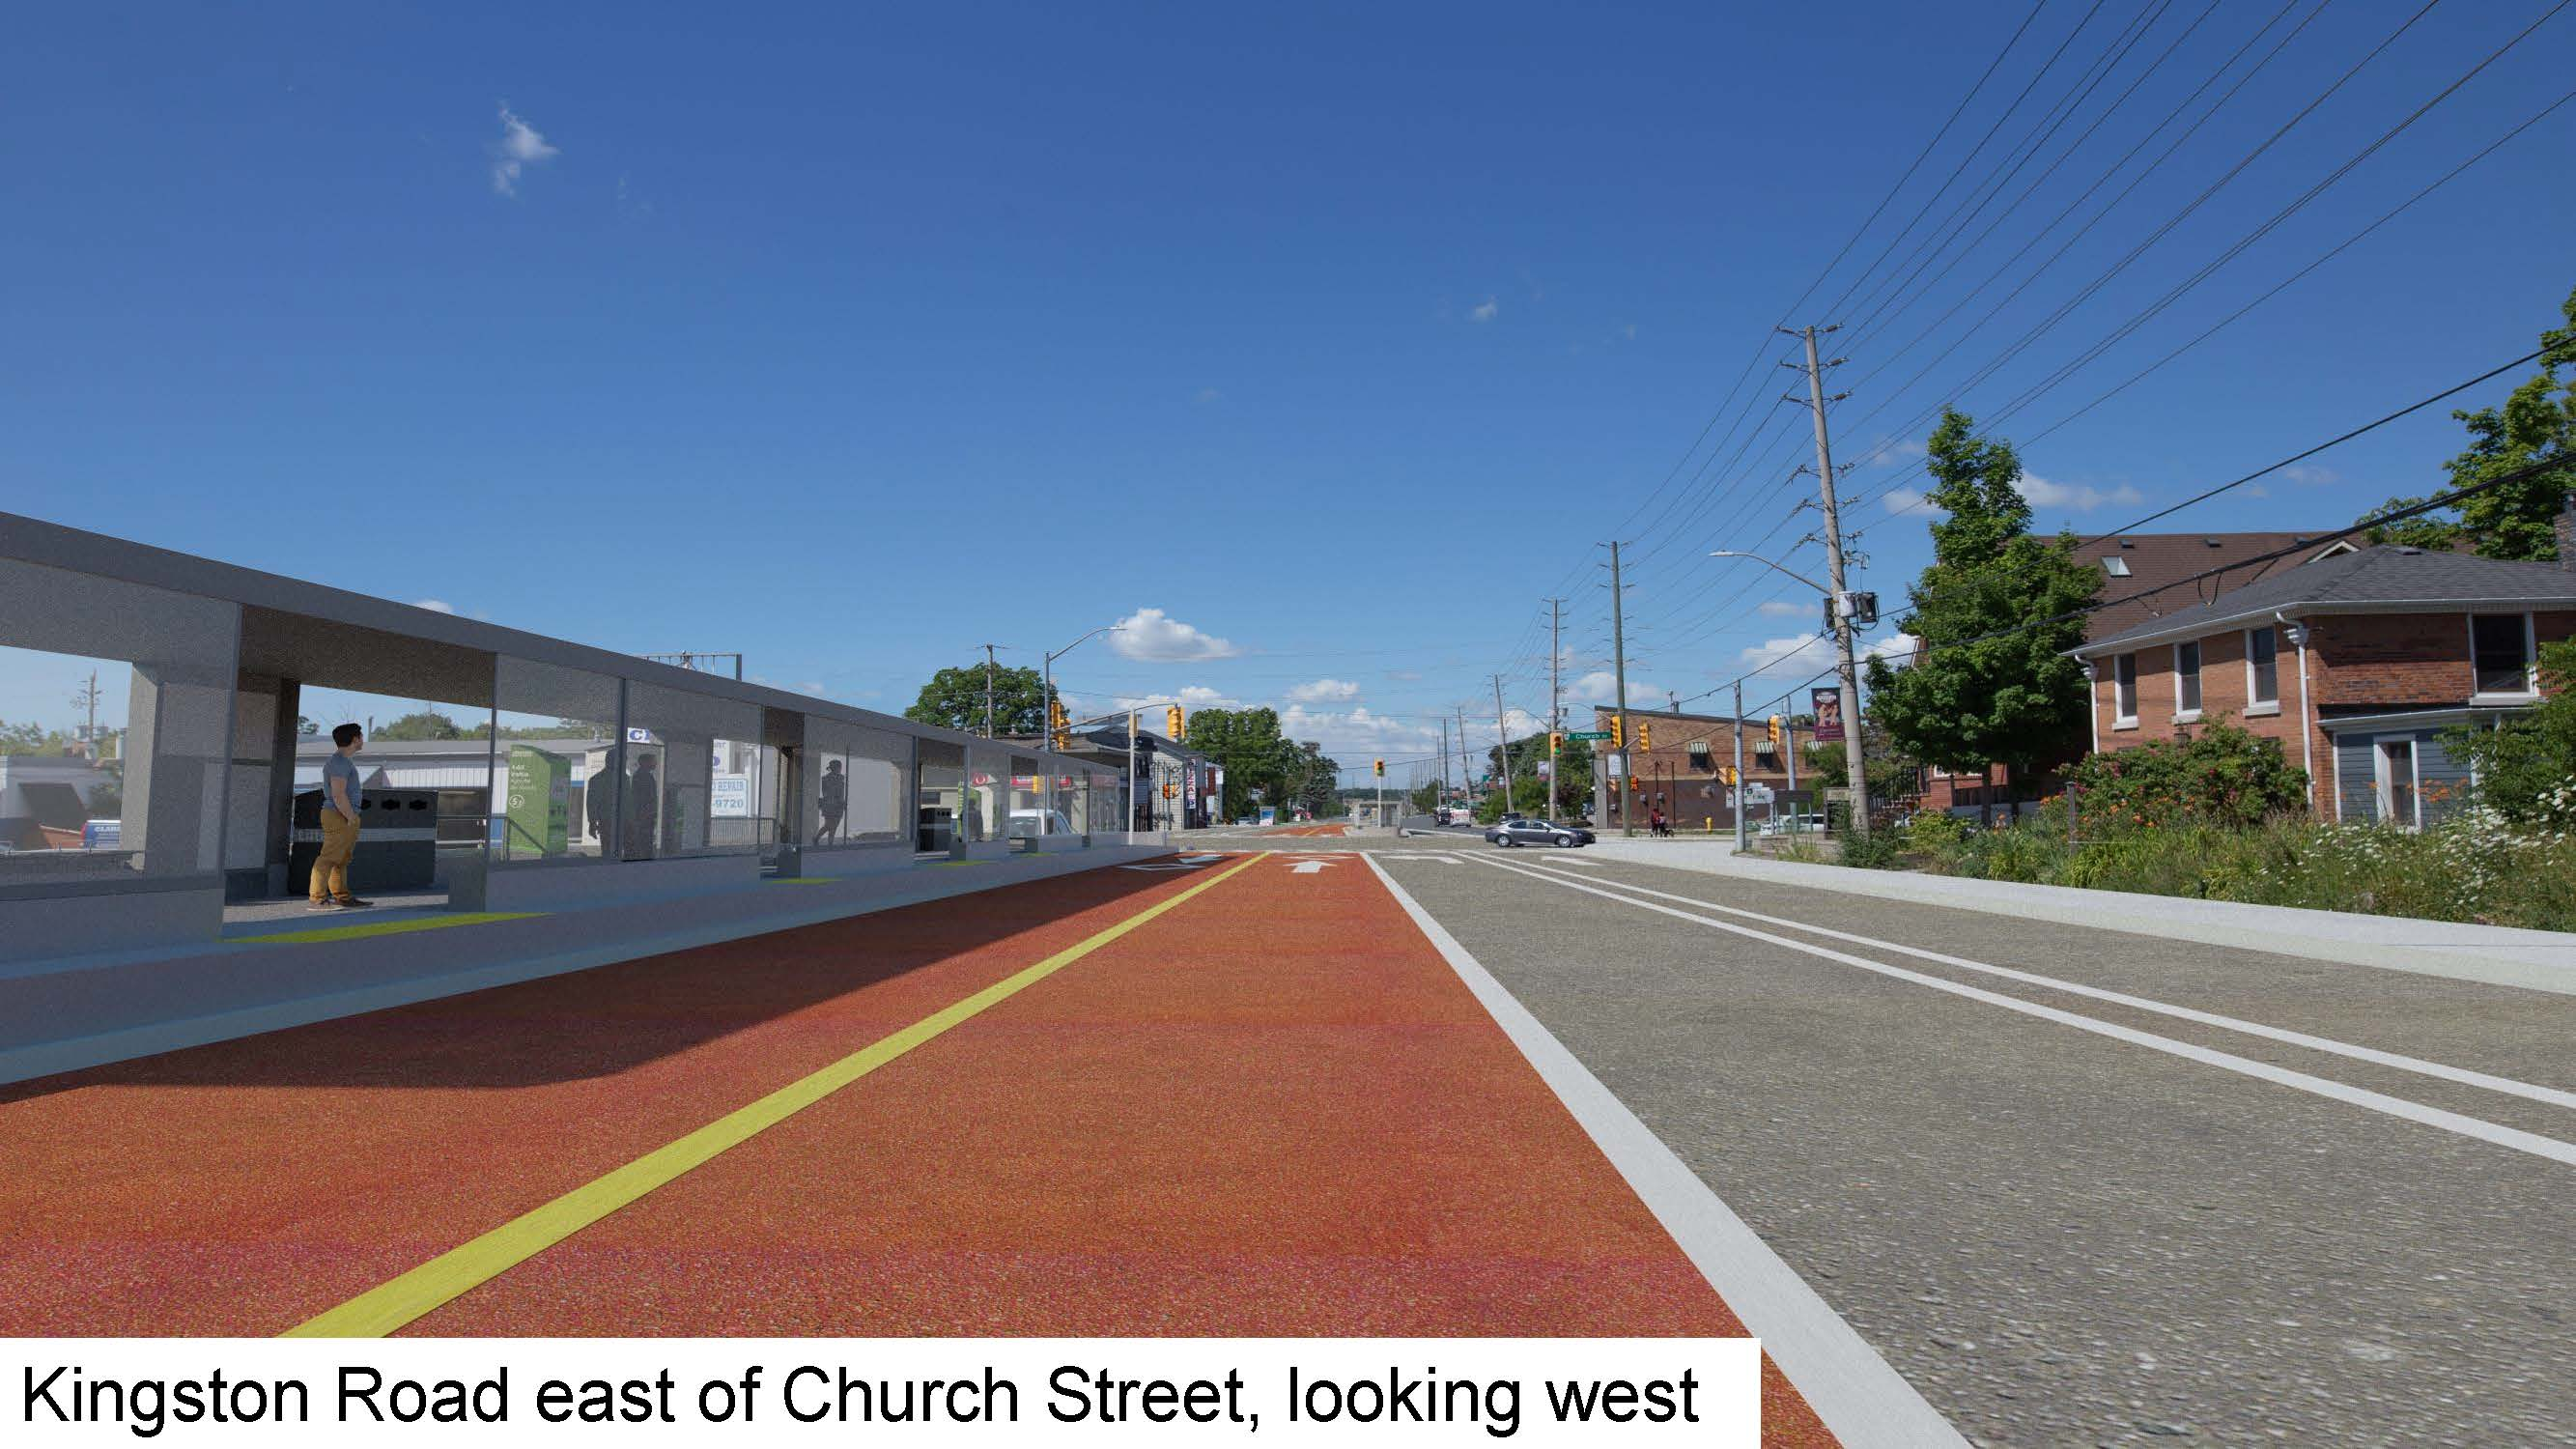 Rendering of Kingston Road east of Church Street, looking west